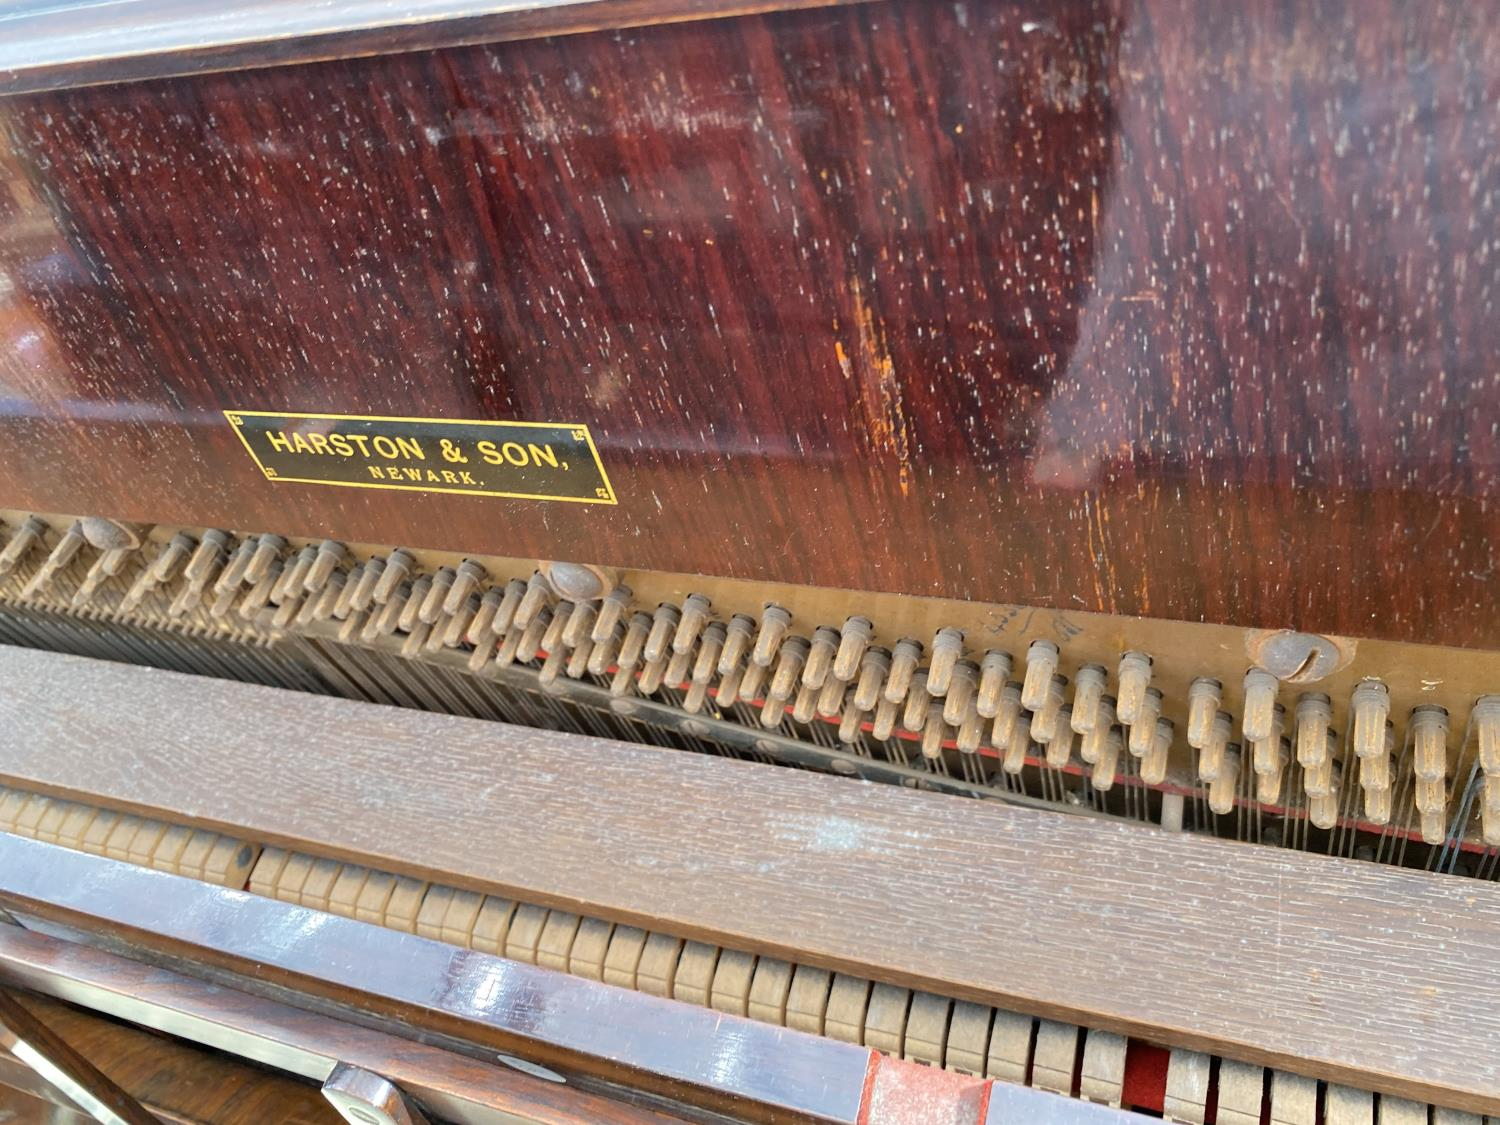 A CHAPPELL & CO LTD UPRIGHT PIANO STAMPED HARTSON & SON, NEWARK - Image 5 of 5